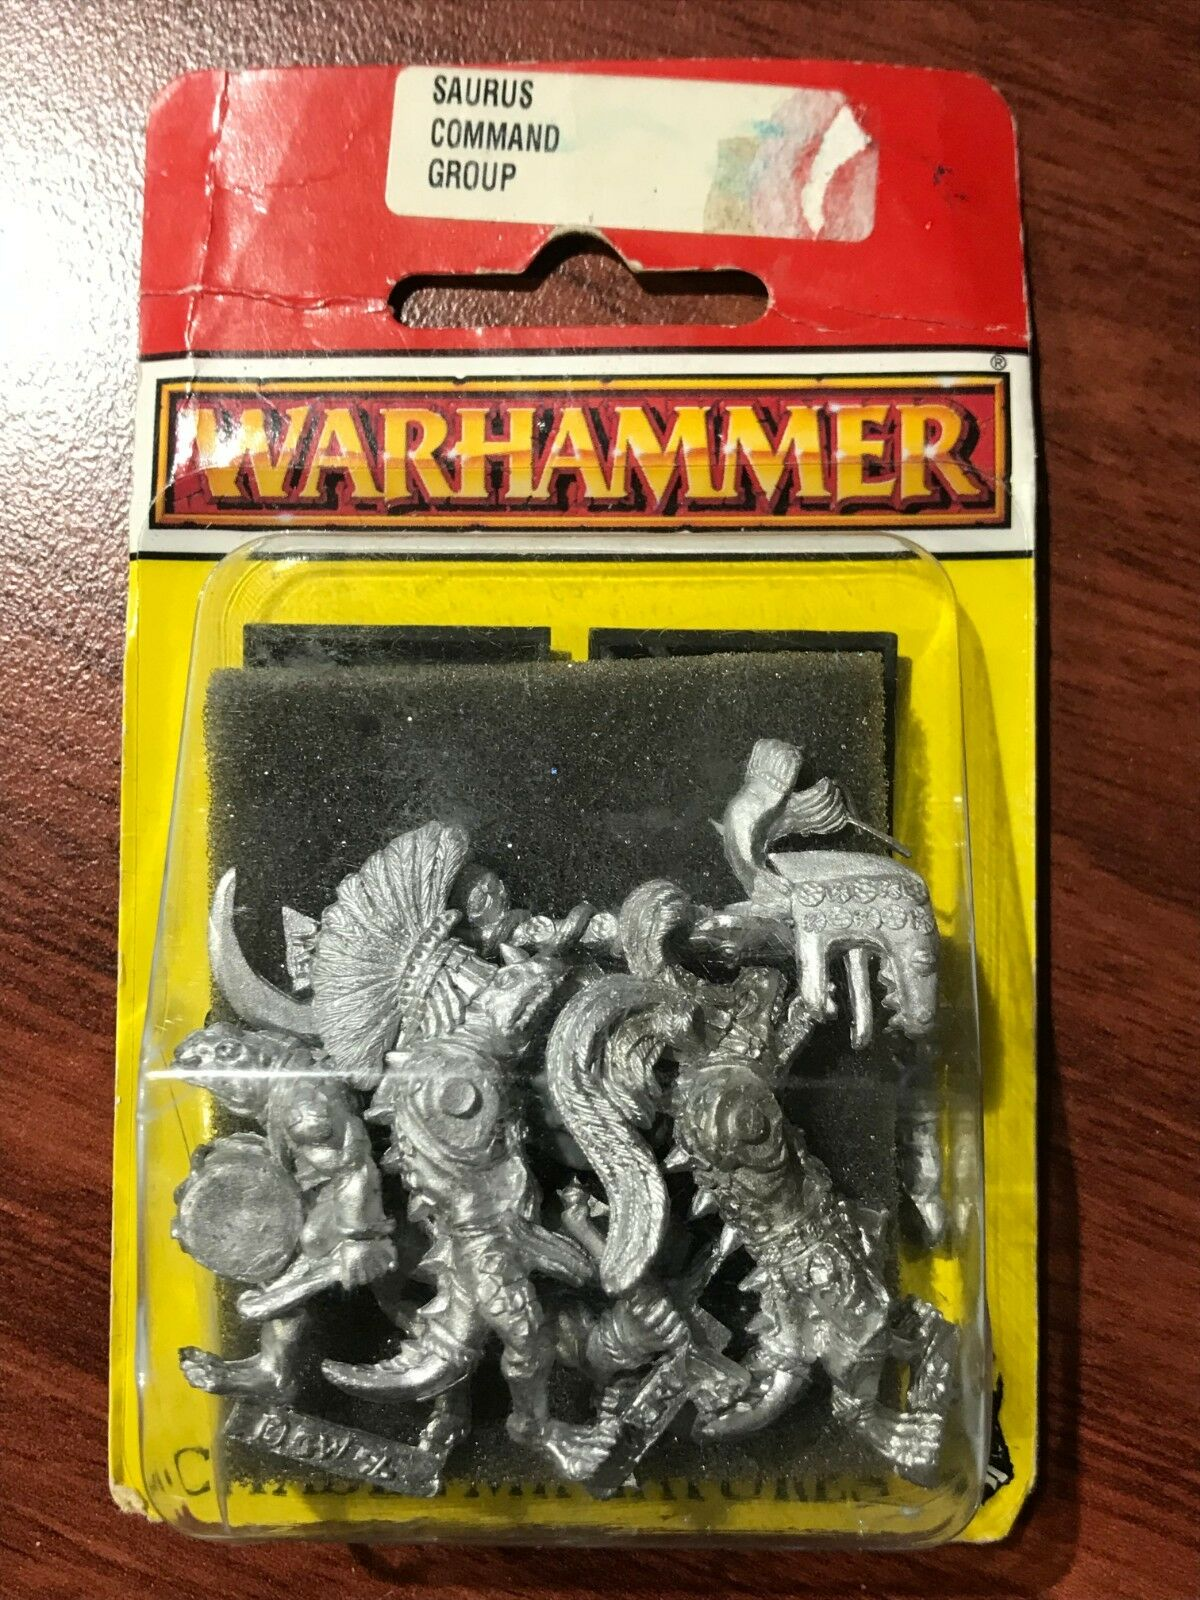 Warhammer Saurus Command Group 1990's Metal